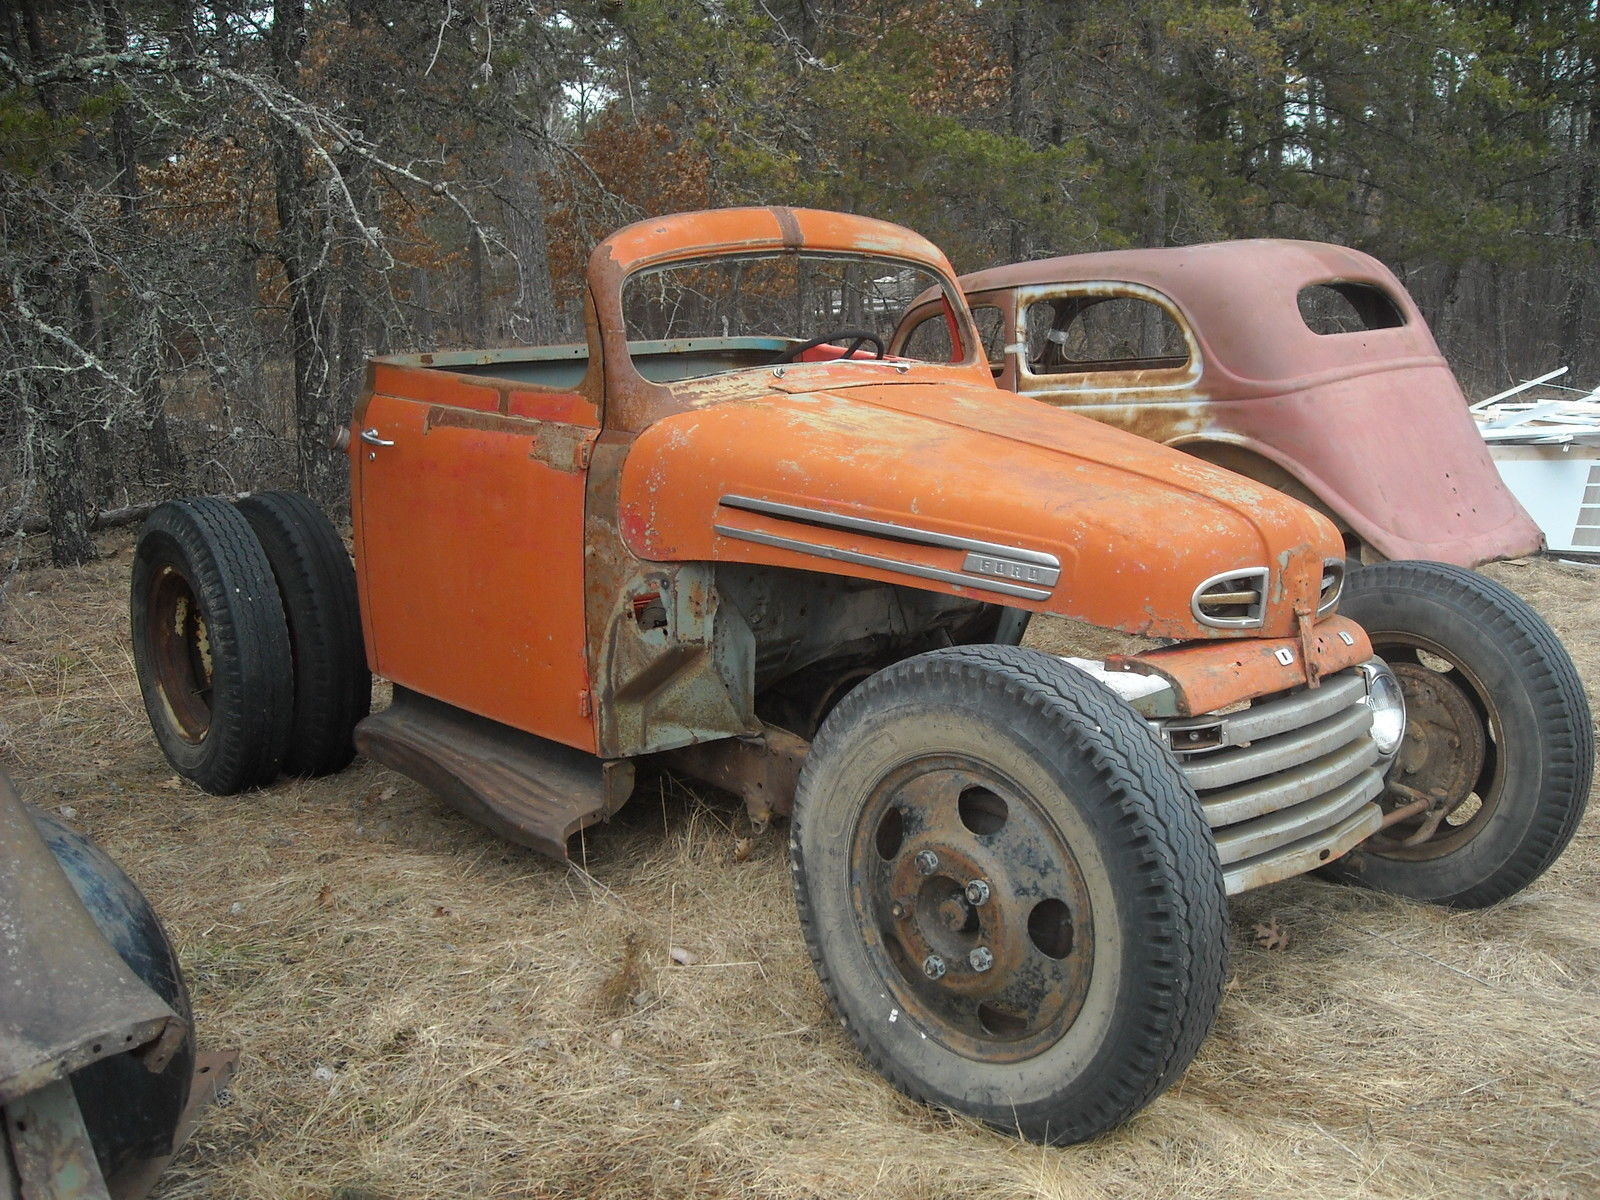 rat rod projects for sale Find rat rod in classic cars | find classic cars for sale locally in ontario - camaro, corvette, ford, cadillac, mustang and more on kijiji, canada's #1 local classifieds.